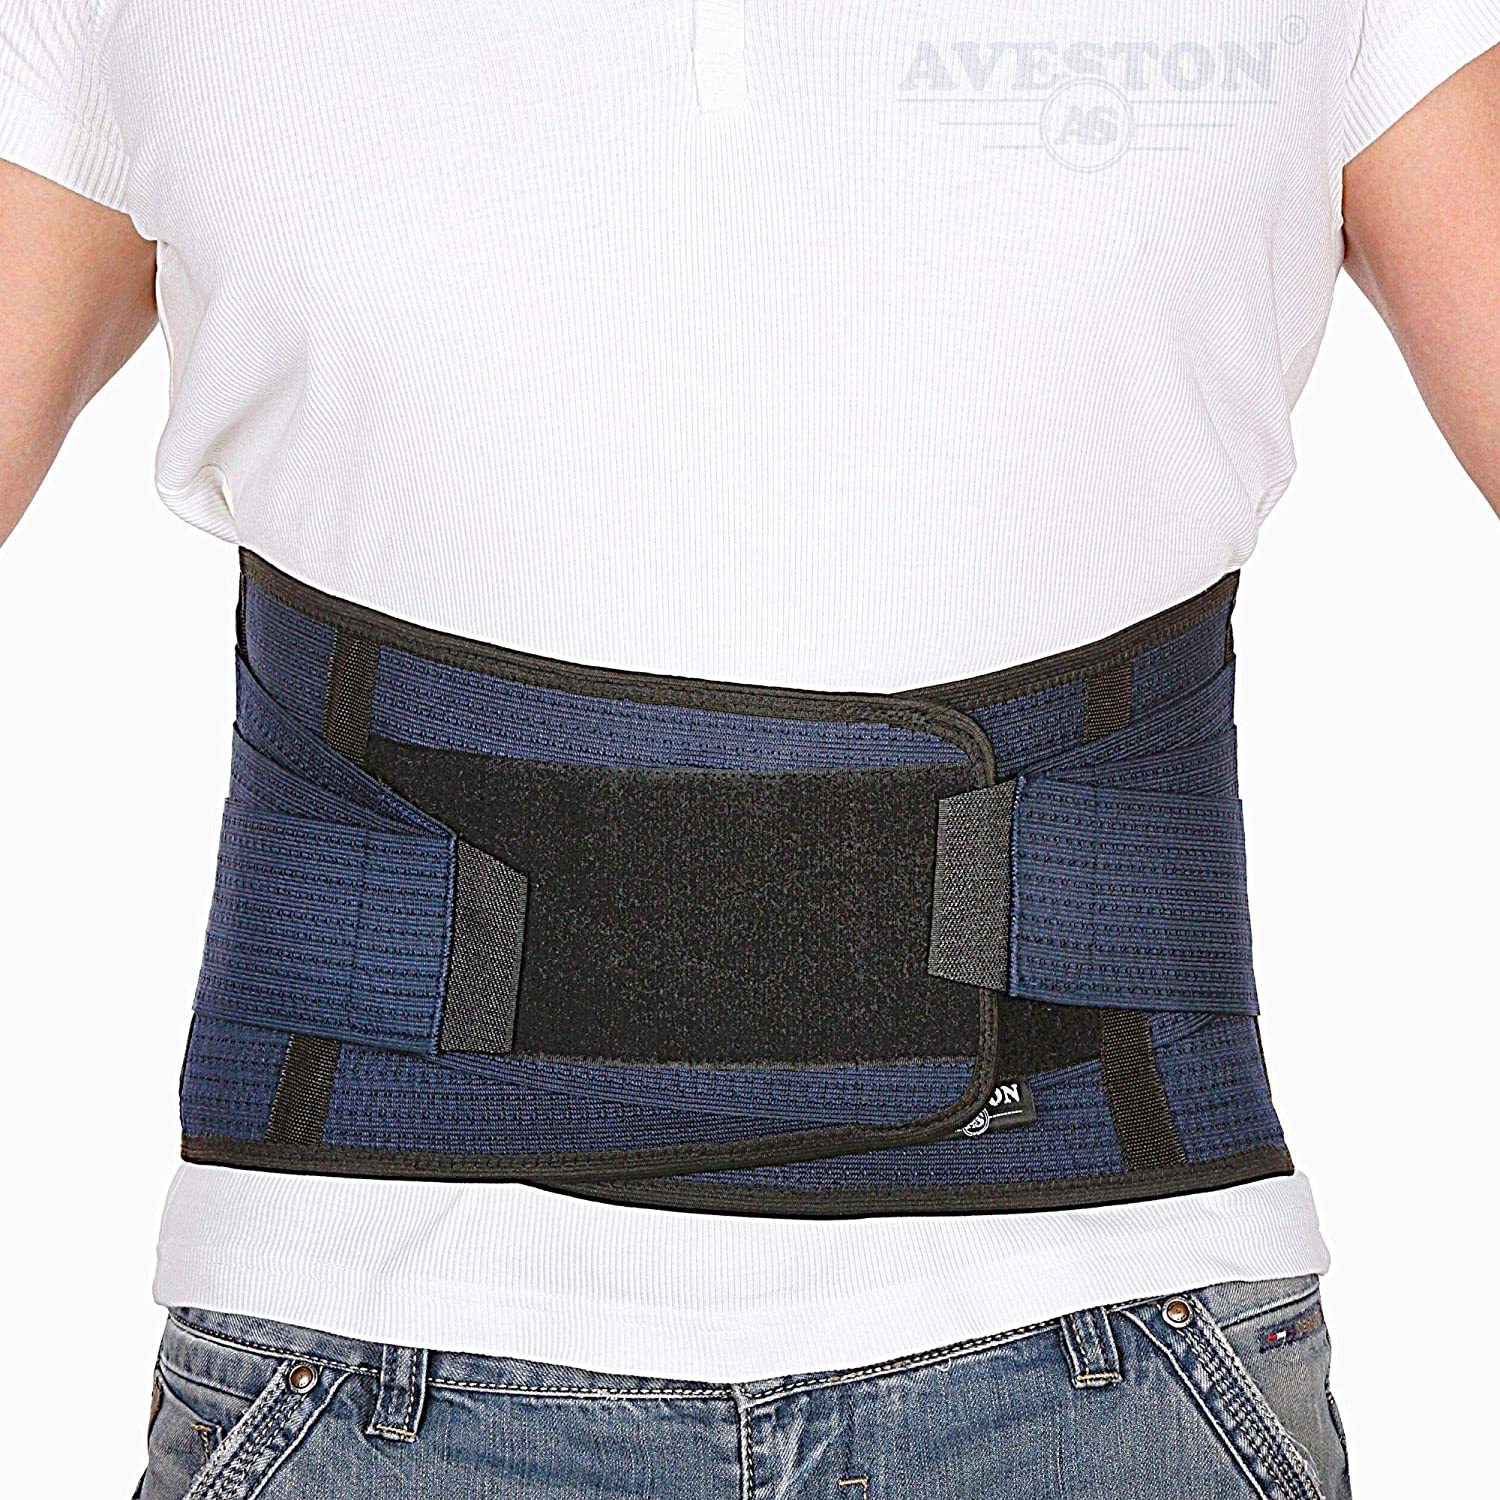 "Back Support Lower Back Brace provides Back Pain Relief - Breathable Lumbar Support Belt for Men and Women keeps your Spine Straight and Safe - Medium size 32''- 37"" at Navel level"